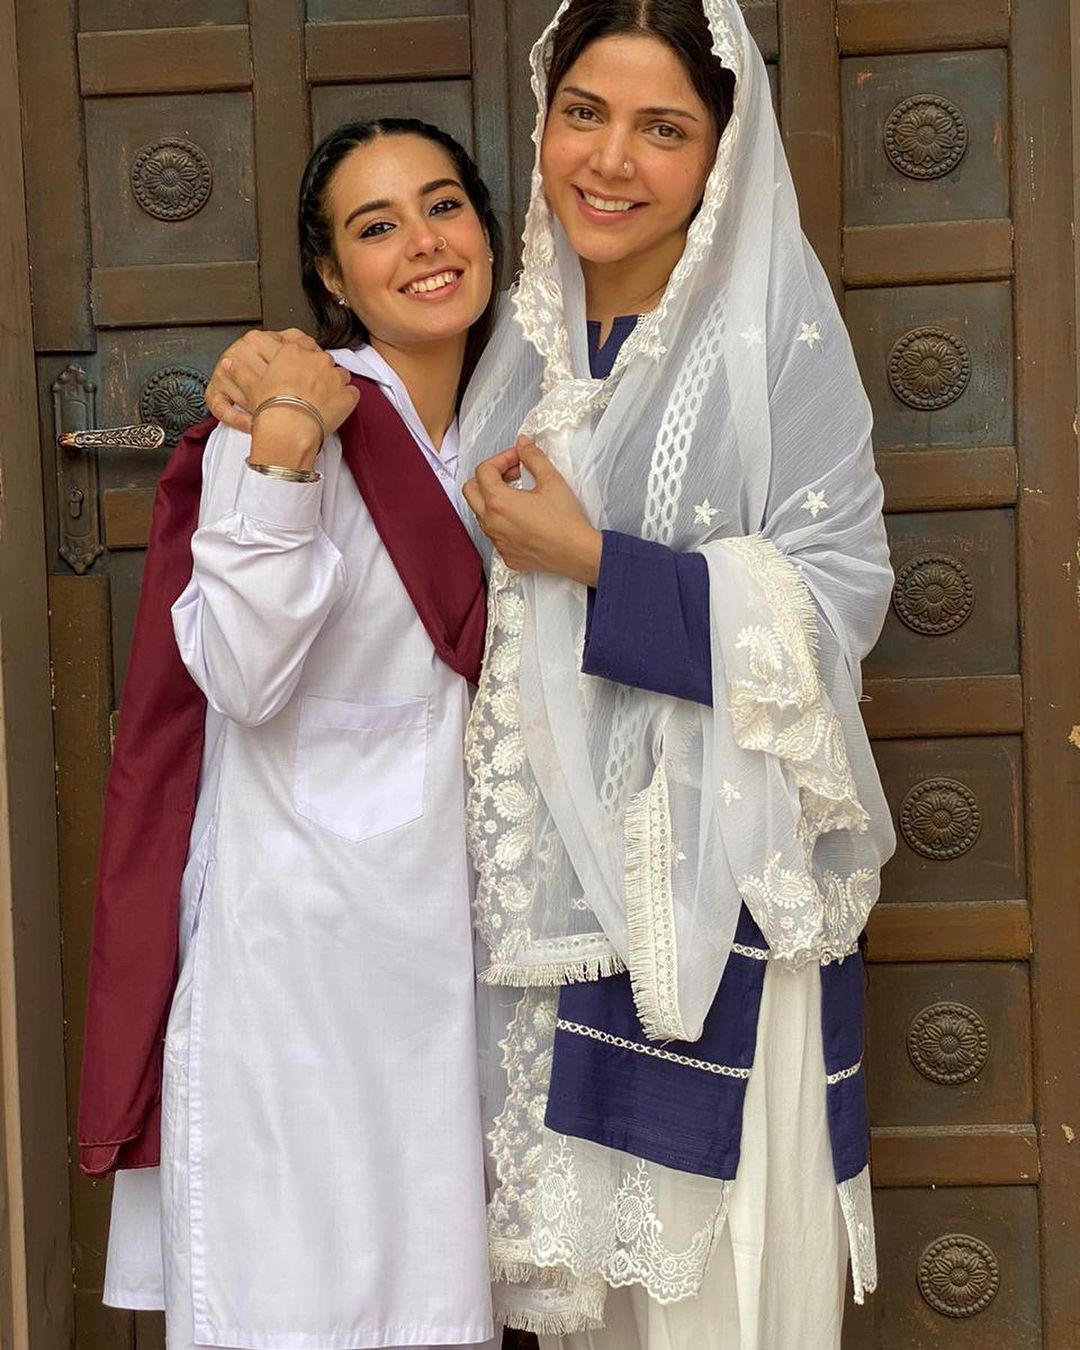 """We know that you must be watching the drama serial 'Raqeeb Se' on HUM TV. We are so sure about that because the story and plot of this drama are so unique that hooks the viewers in a moment of time. From the traditional sketch of a love story to the little chunks of climax throughout the play, the script and direction make it an absolute masterpiece. The best thing about Raqeeb Se is that Hadiqa Kiani, who is famously known for her soulful voice, has made her acting debut with this project.  She keeps on sharing some of the best moments from the shooting of the drama. It seems Hadiqa wanted to do something that makes way direct to viewers hearts. Undoubtedly, she has achieved this goal and that's the reason people don't take a pause in admiring her work. This time, Hadiqa Kiani has shared her memory from the village shoot. Here we have got pictures and further details!  Hadiqa Kiani Shares Most Memorable Moments From 'Raqeeb Se' Shoot!   Although Hadiqa keeps on sharing different pictures from the shoot time of 'Raqeeb Se', however, this time it grabbed our attention as she recalled her time spent in the village. Hadiqa took a heartwarming click to Instagram in which the kids from the village are hugging her while being all in smiles. Check out this click!  The comfort zone these kids had seemingly achieved as per the picture depicts how much kind-hearted and loving Hadiqa is towards children. While posting this picture on Instagram, Hadiqa penned:  """"WHEN ASKED WHAT MY FAVORITE PART OF FILMING#RAQEEBSE WAS, I SO OFTEN GET LOST WITHIN THE BEAUTIFUL SCRIPT, MY CAST AND CREW BUT TRULY, MY MOST FAVORITE MEMORIES WERE FILMING IN THE VILLAGE AND PLAYING WITH THE LOCAL GIRLS. THESE INSPIRING BUNDLES OF JOY WERE A SOURCE OF LIFE FOR ME 💗💗💗""""  The Raqeeb Se actress also posted a video to refresh the memory with an idea to make her fans part of the moment.  Watch the video!  We are loving every bit of this drama serial and hope to see Hadiqa Kiani in more projects in future."""